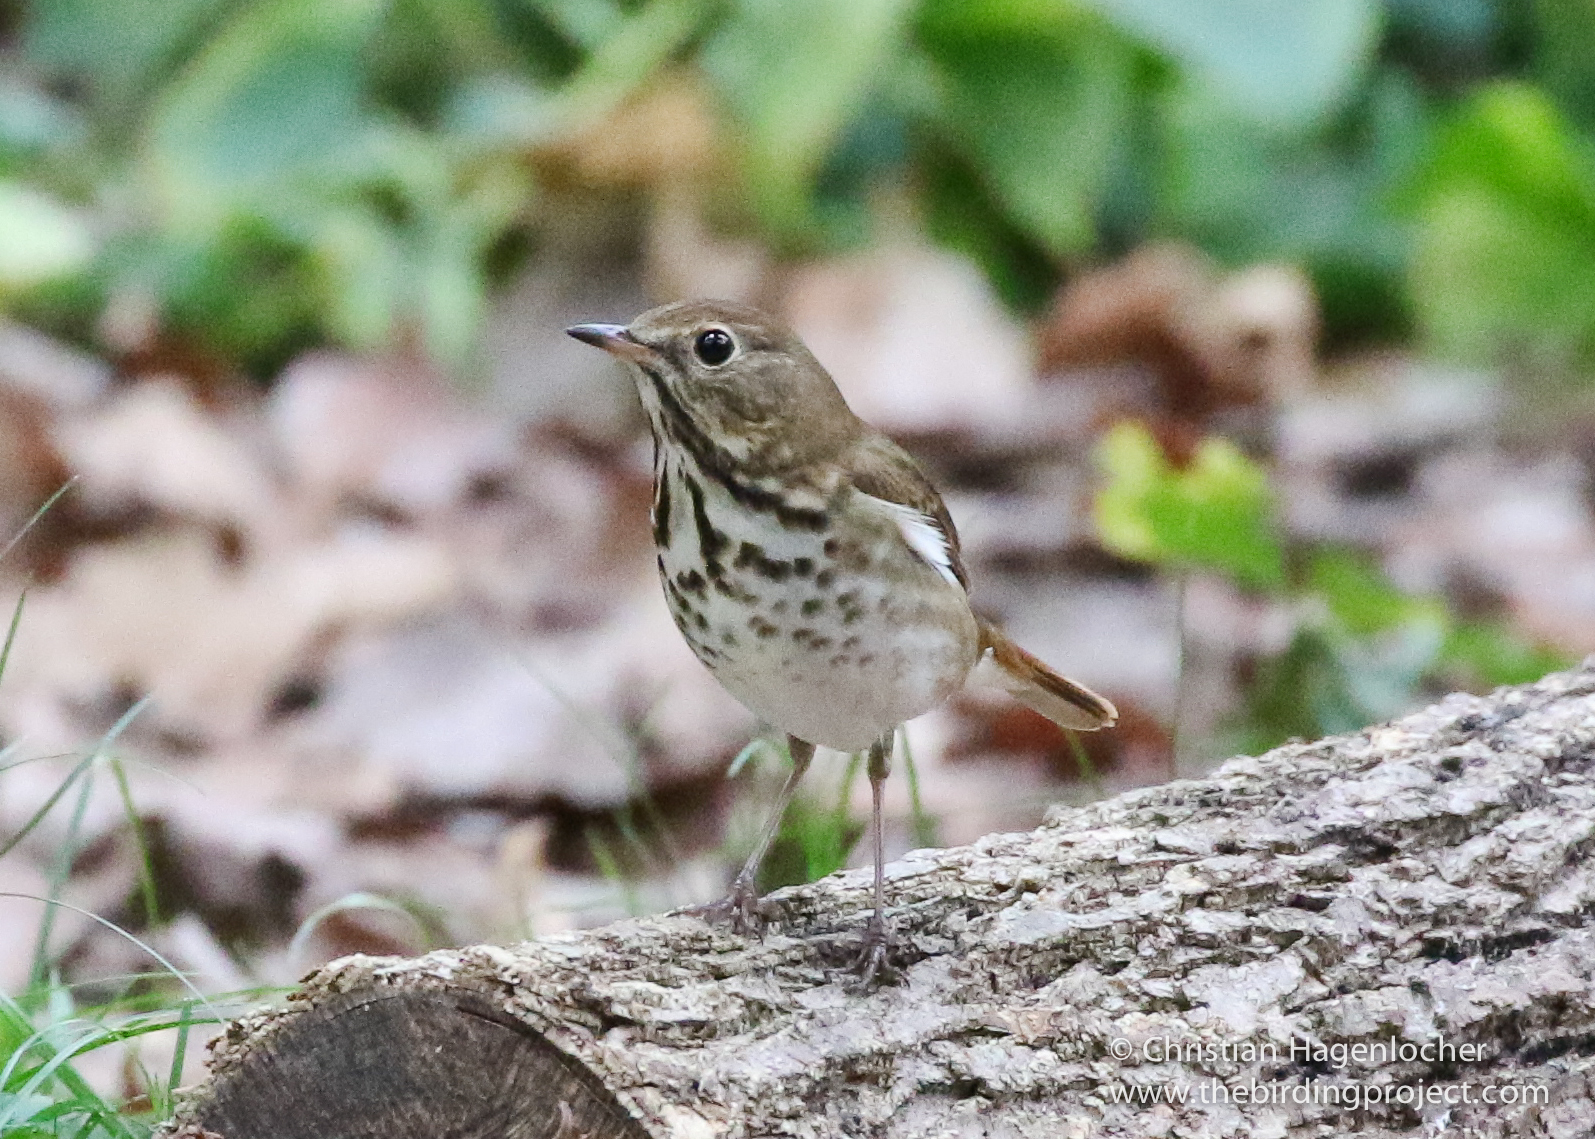 This isn't an Ovenbird... Can you tell what species of thrush this is? Comments are open!